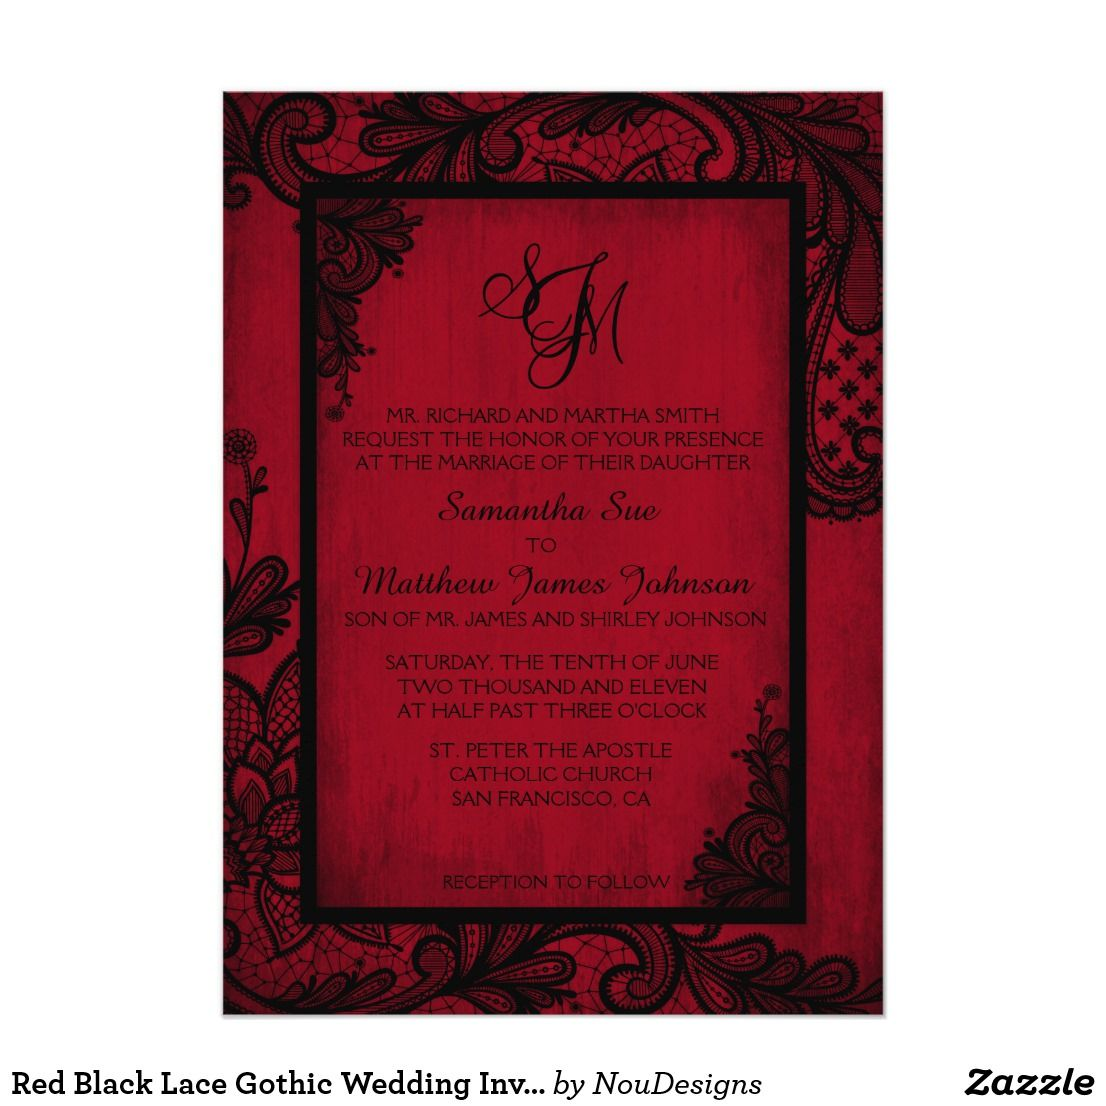 Red Black Lace Gothic Wedding Invitation Card | { Wedding ...